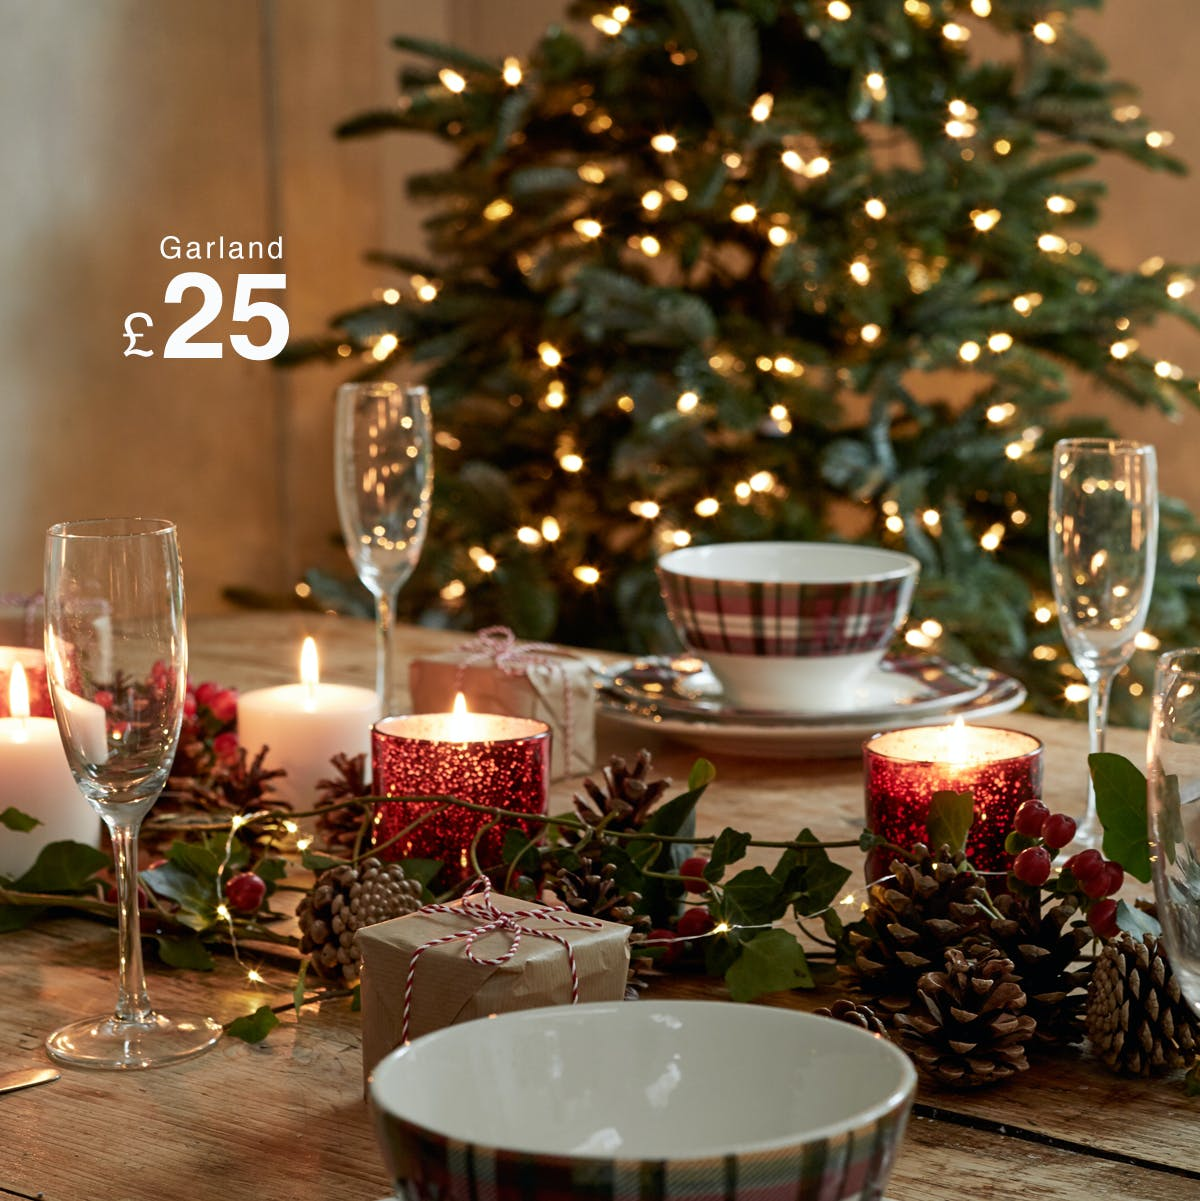 Christmas Decorations For Dining Room Table: How To Set The Perfect Christmas Dining Table